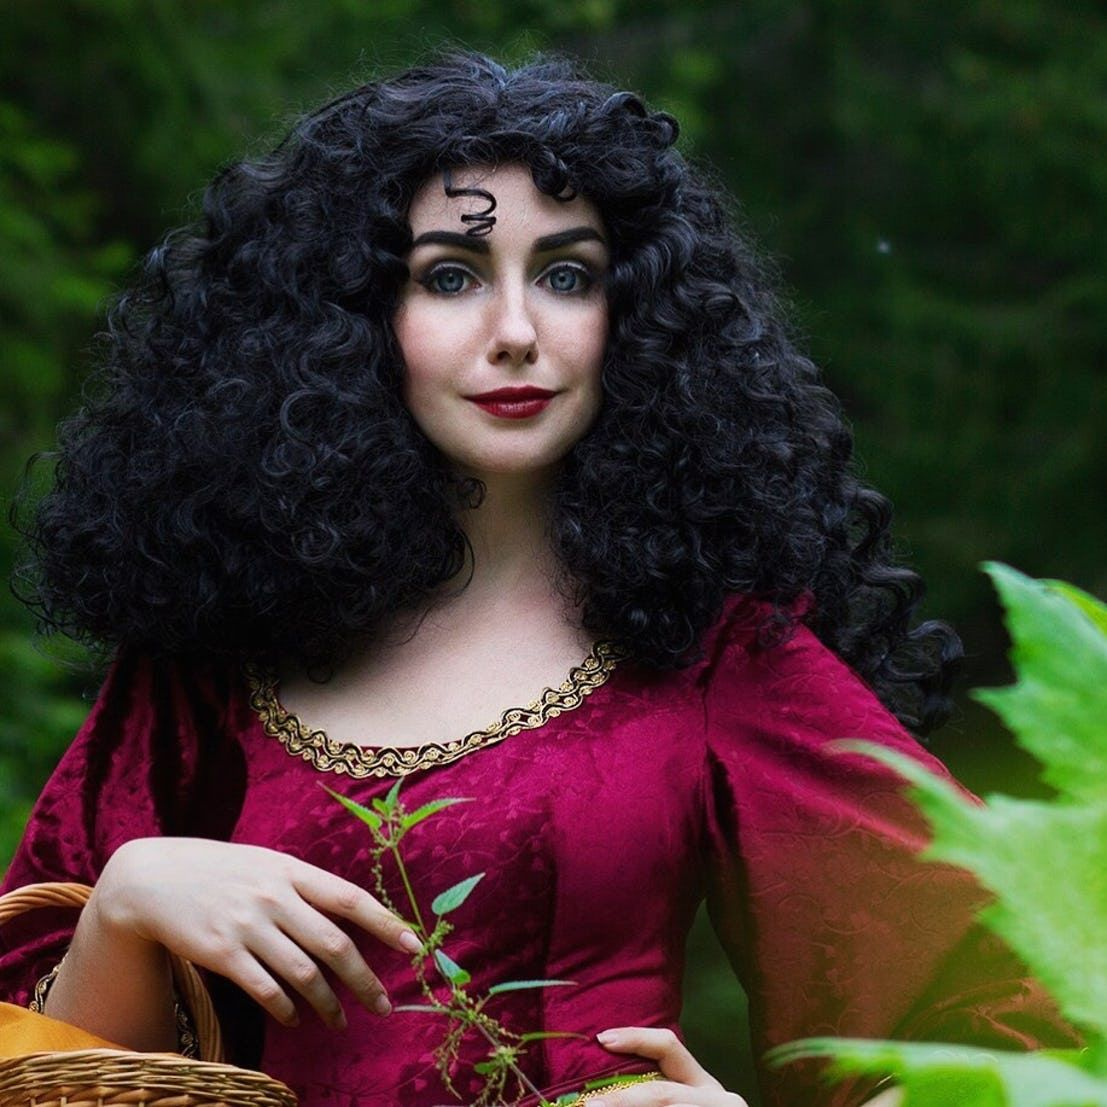 15 Incredible Cosplayers Who Take Disney Villains To The Next Level